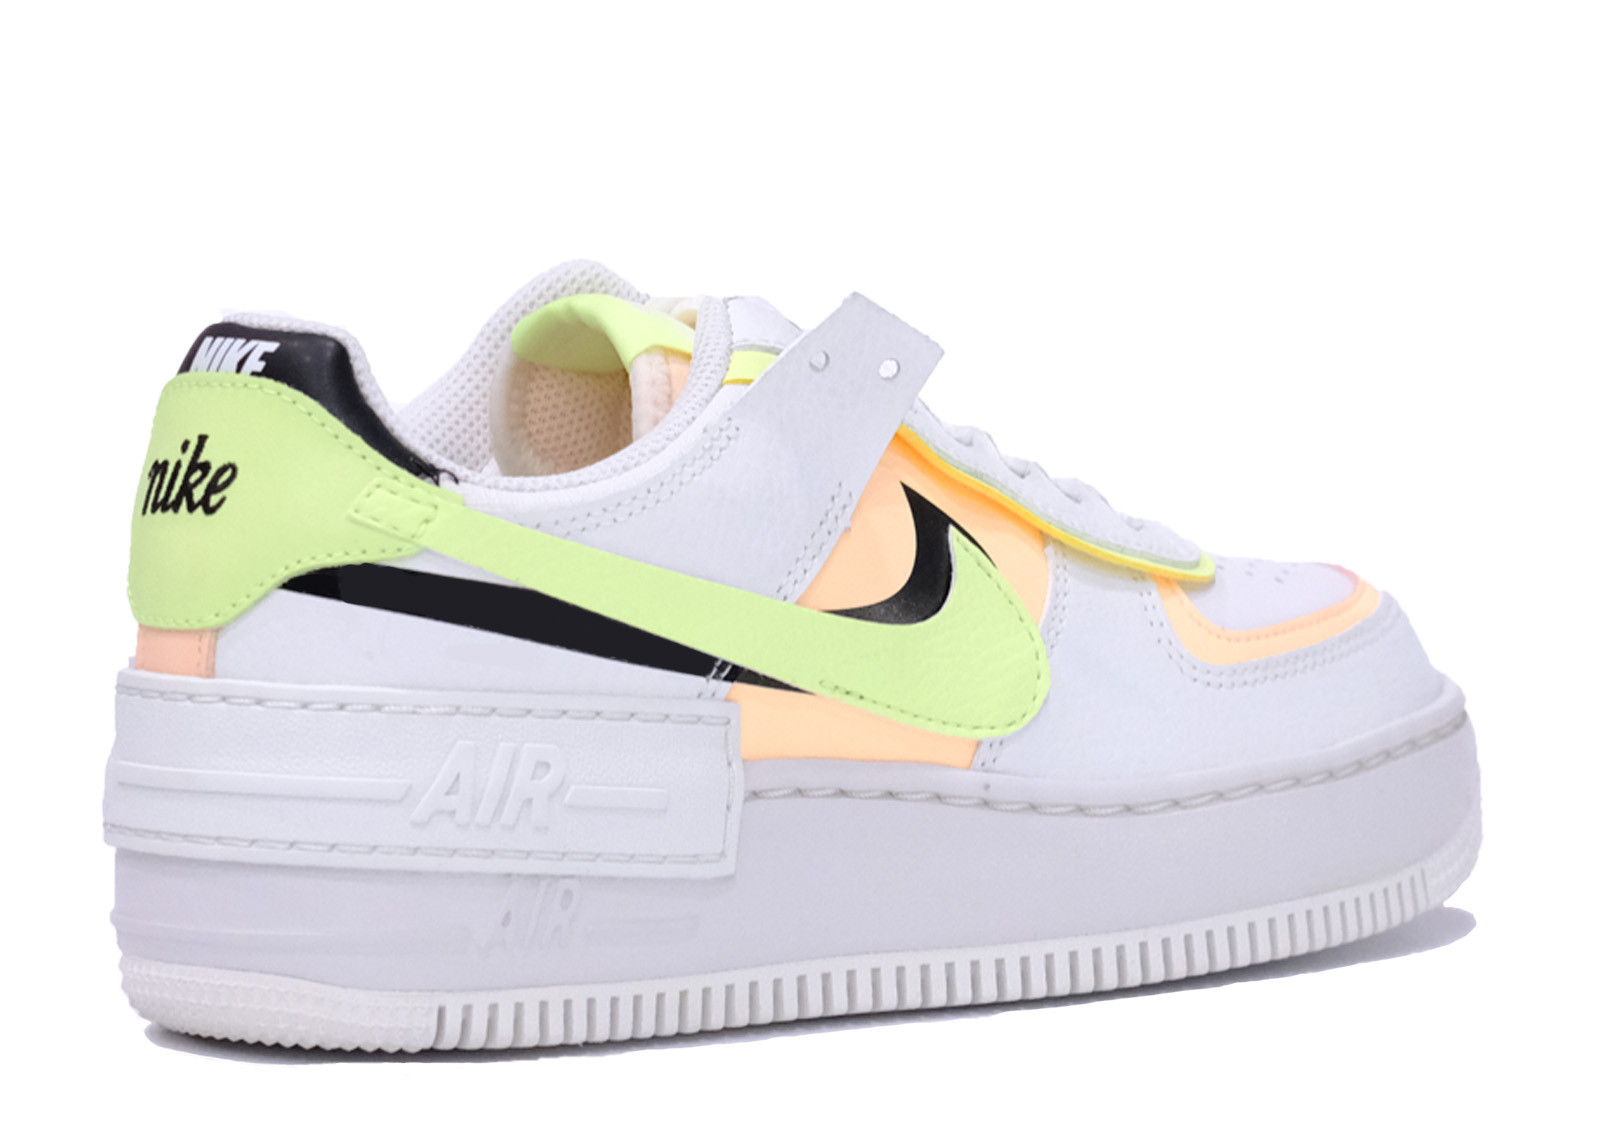 AIR FORCE 1 SHADOW BARELY VOLT CRIMSON TINT (W) image 3